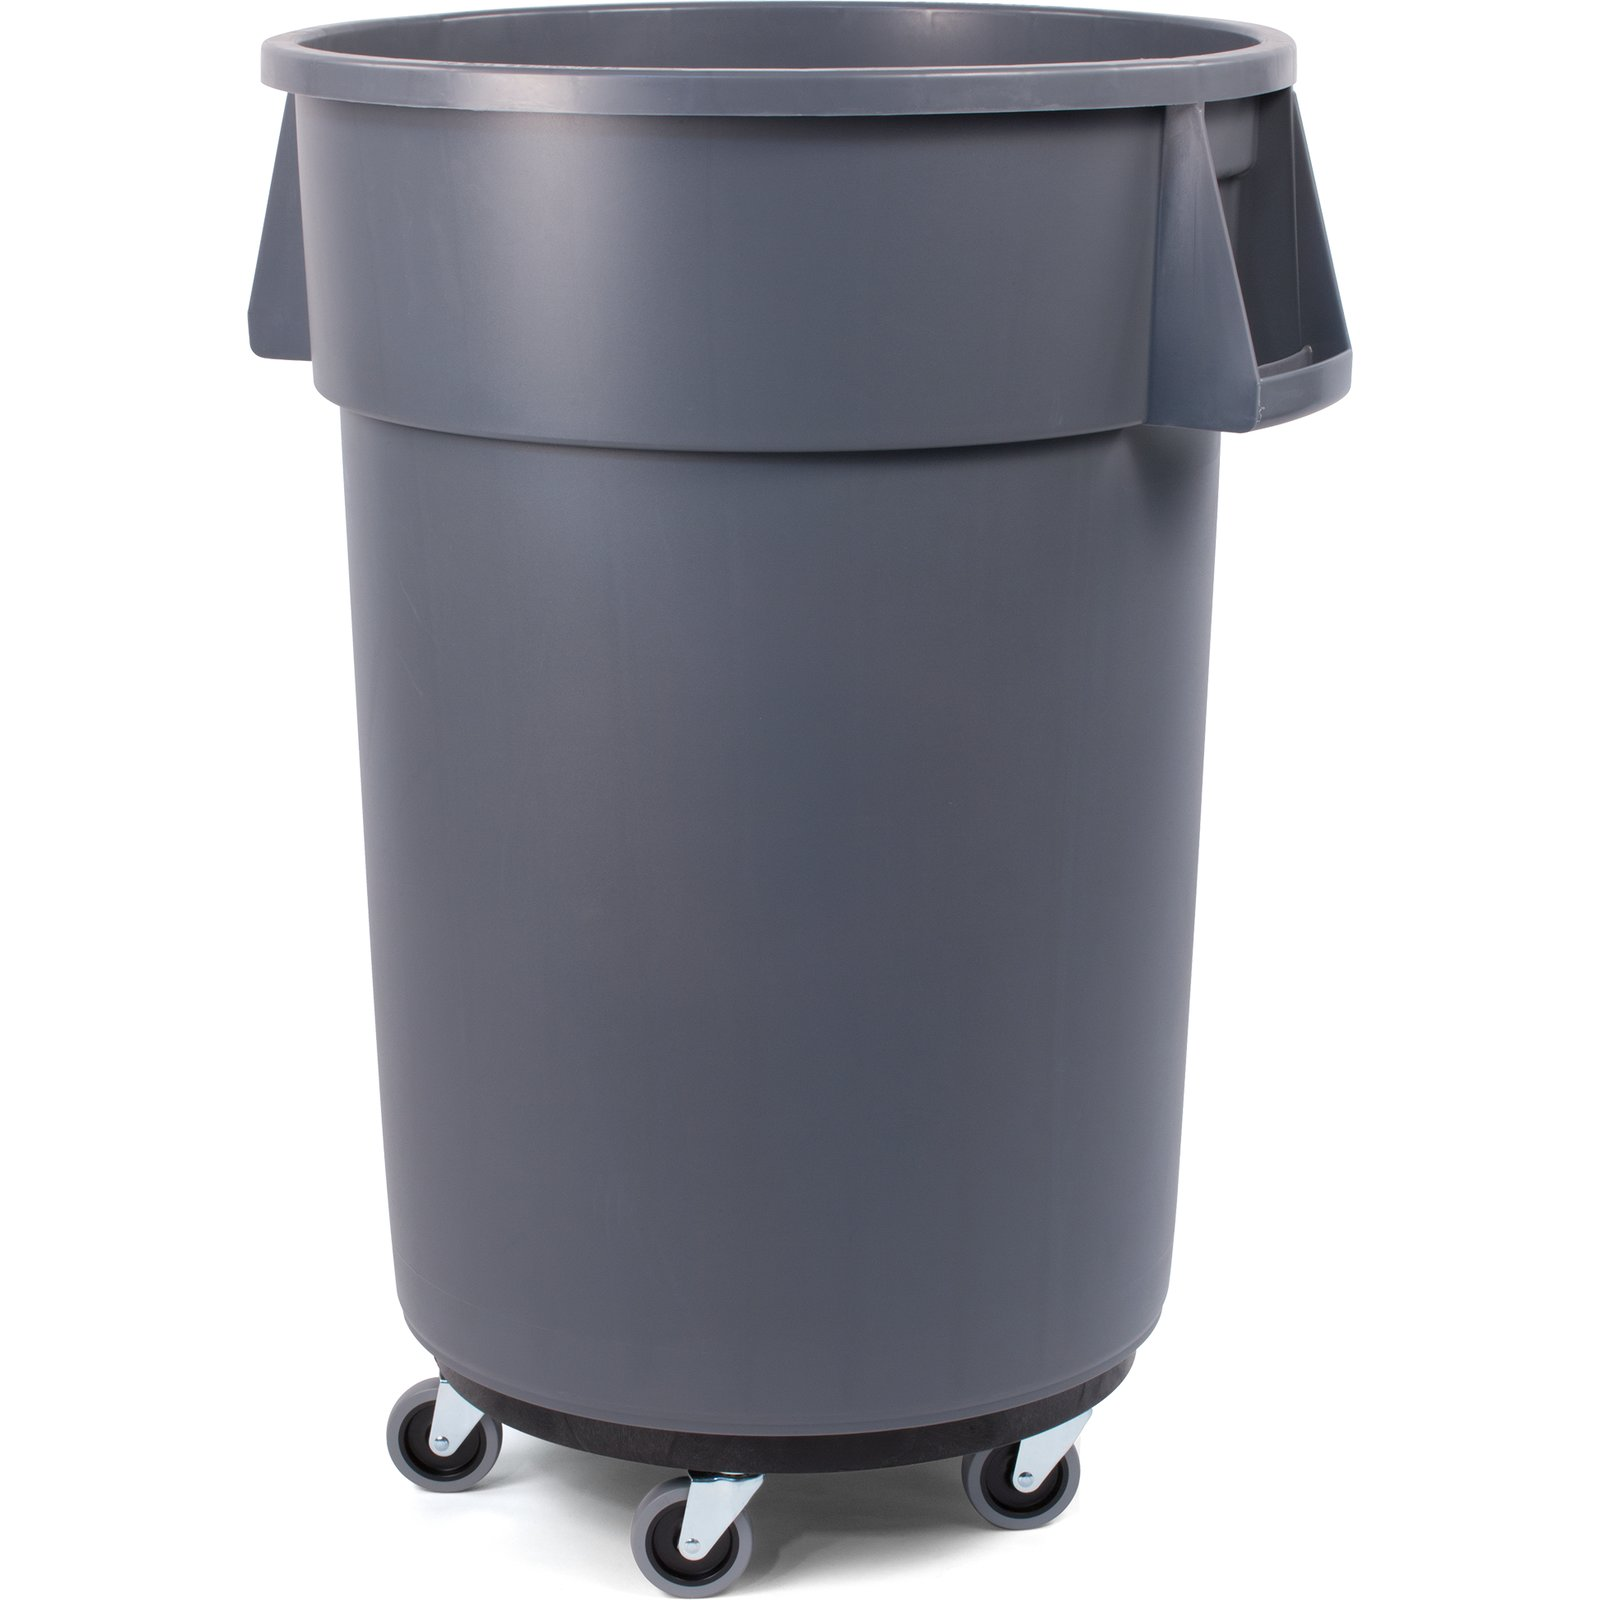 Cool Trash Bins 34114423 Bronco Round Waste Bin Trash Container Dolly 44